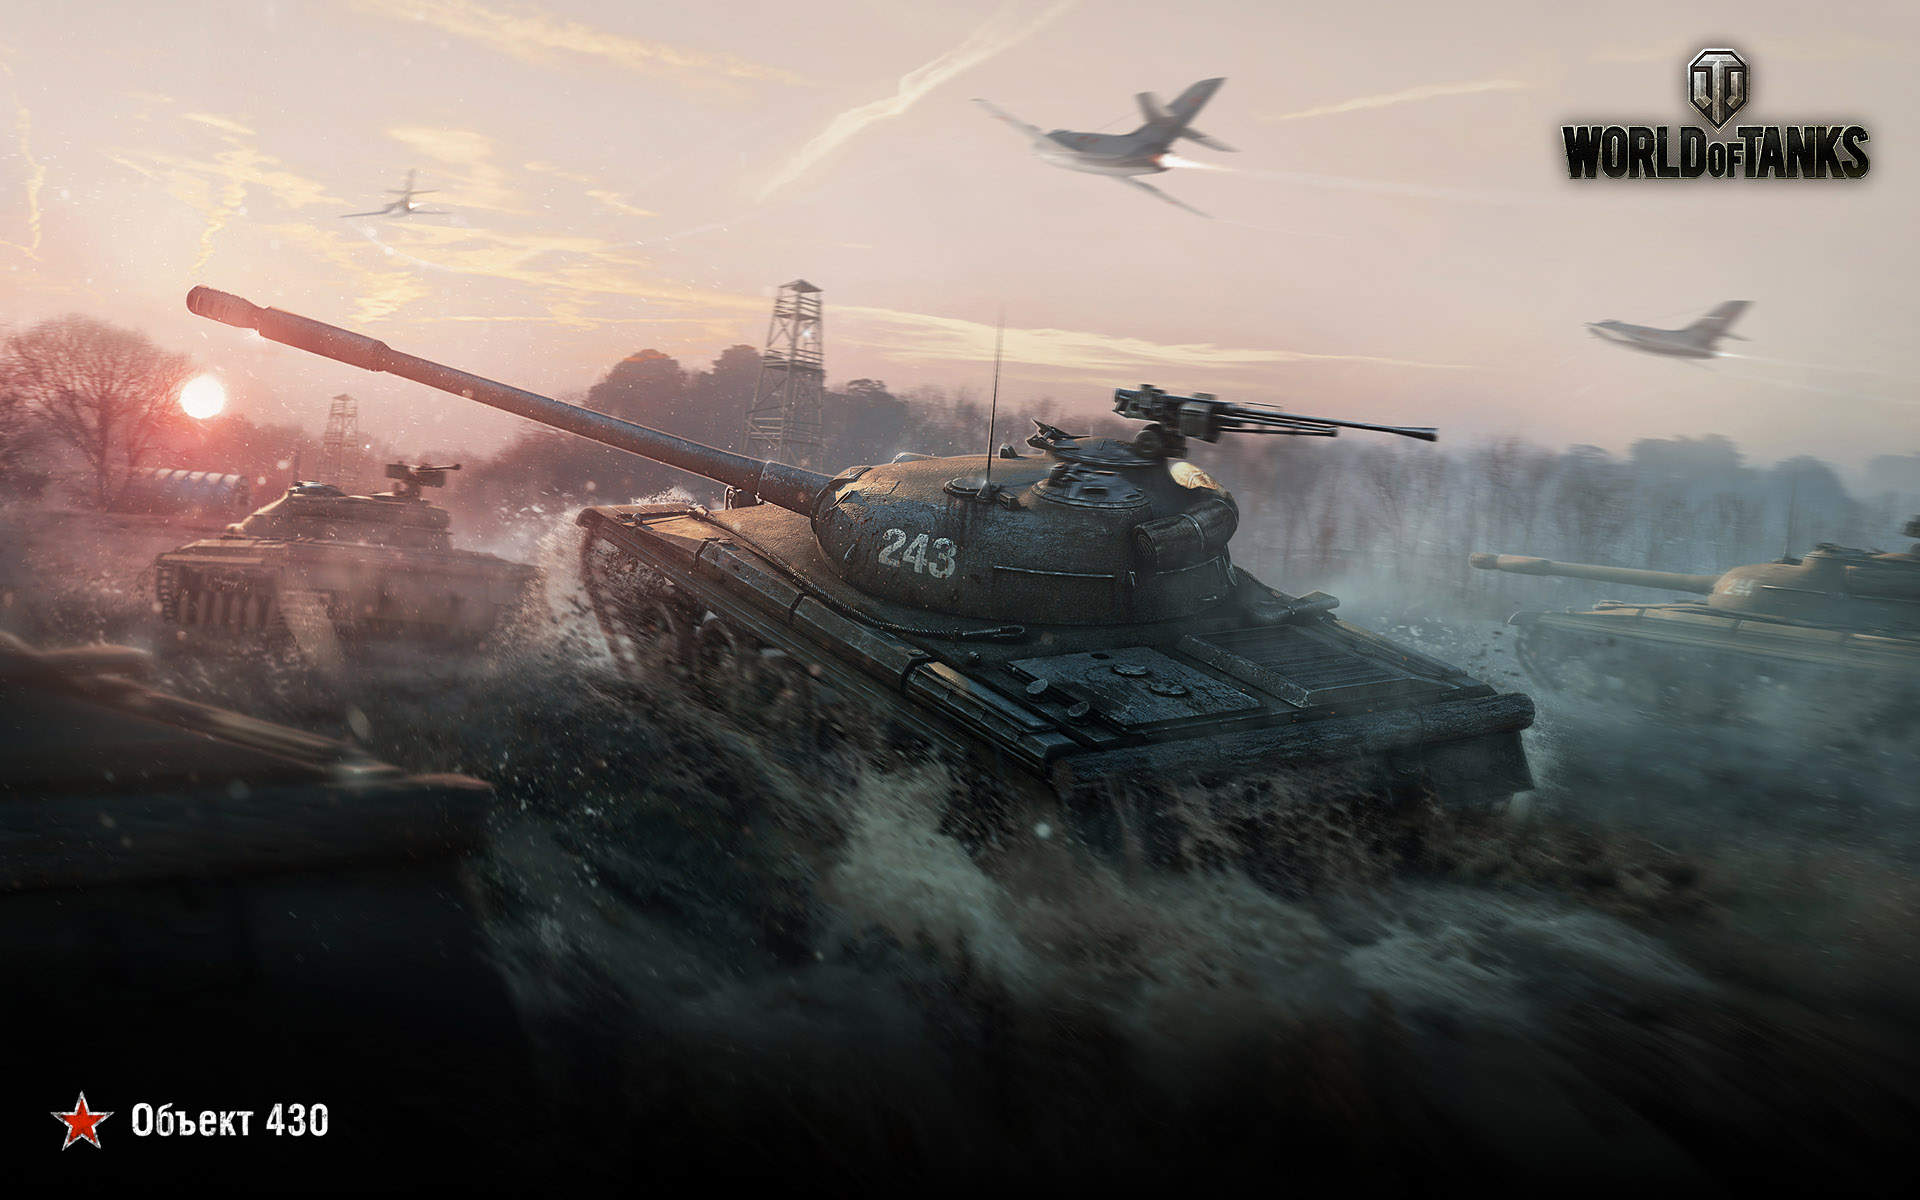 обьект 430, танк, wot, world of tanks